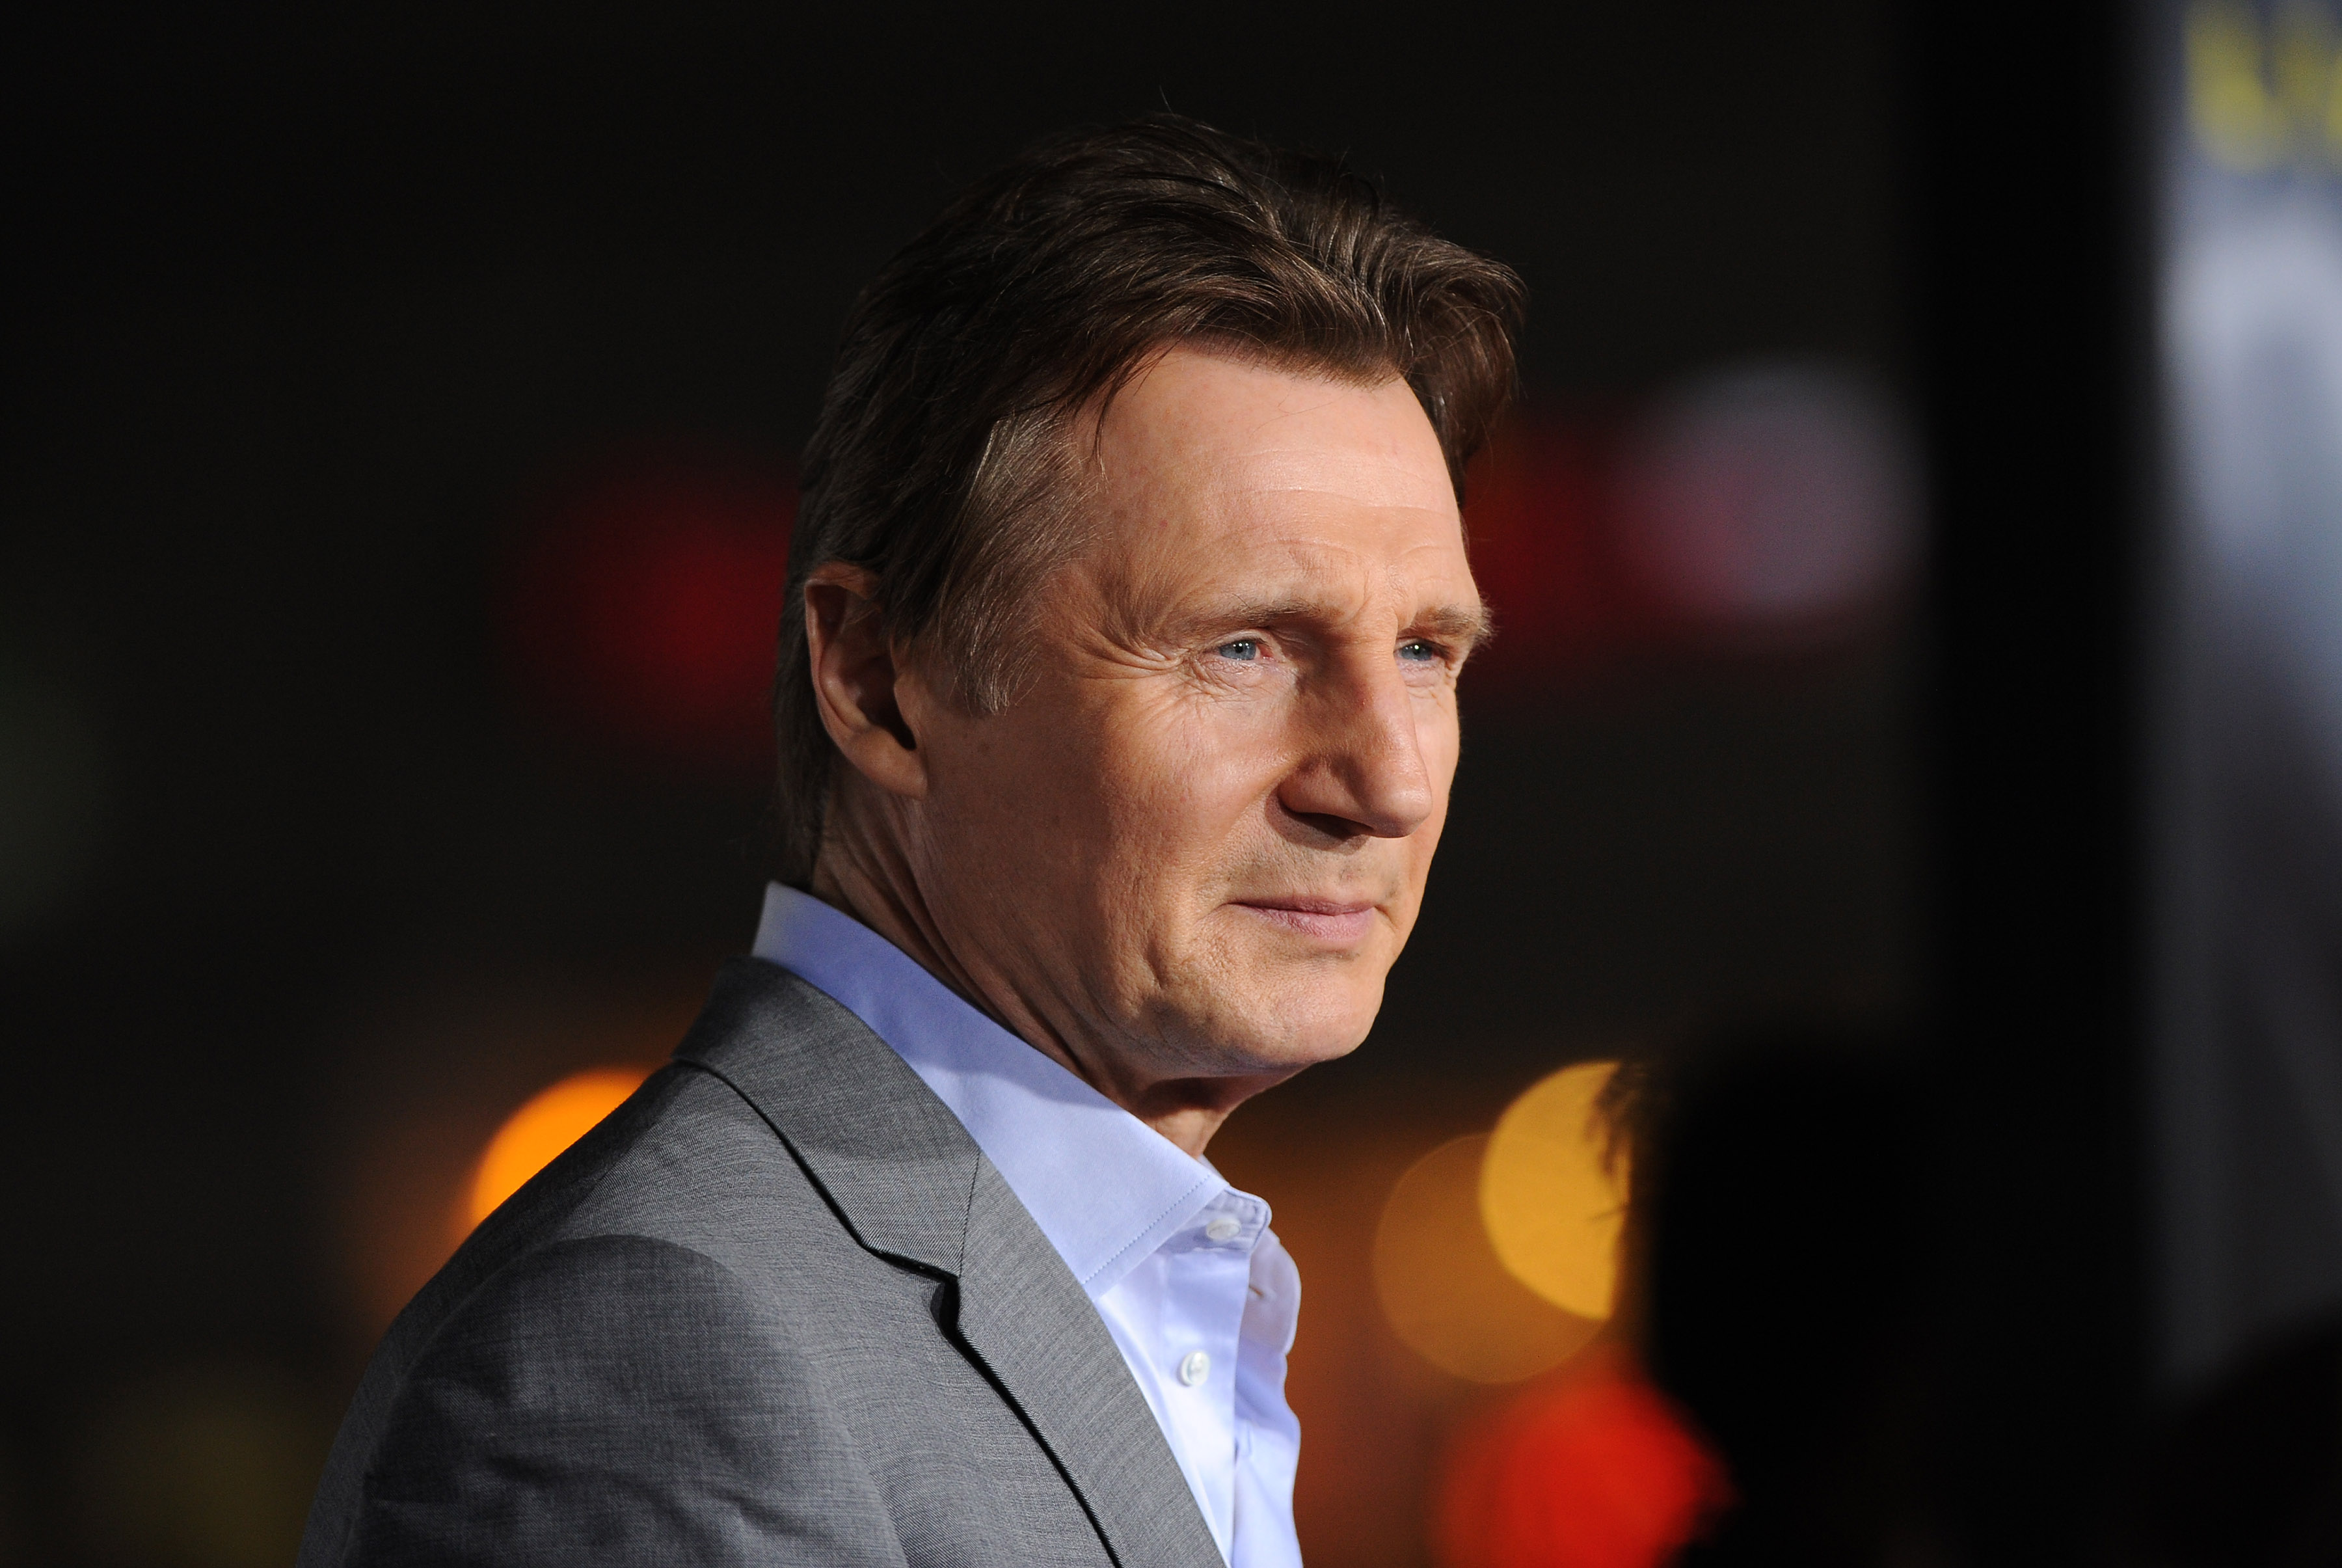 Liam Neeson admitted to once wanting to kill a black man